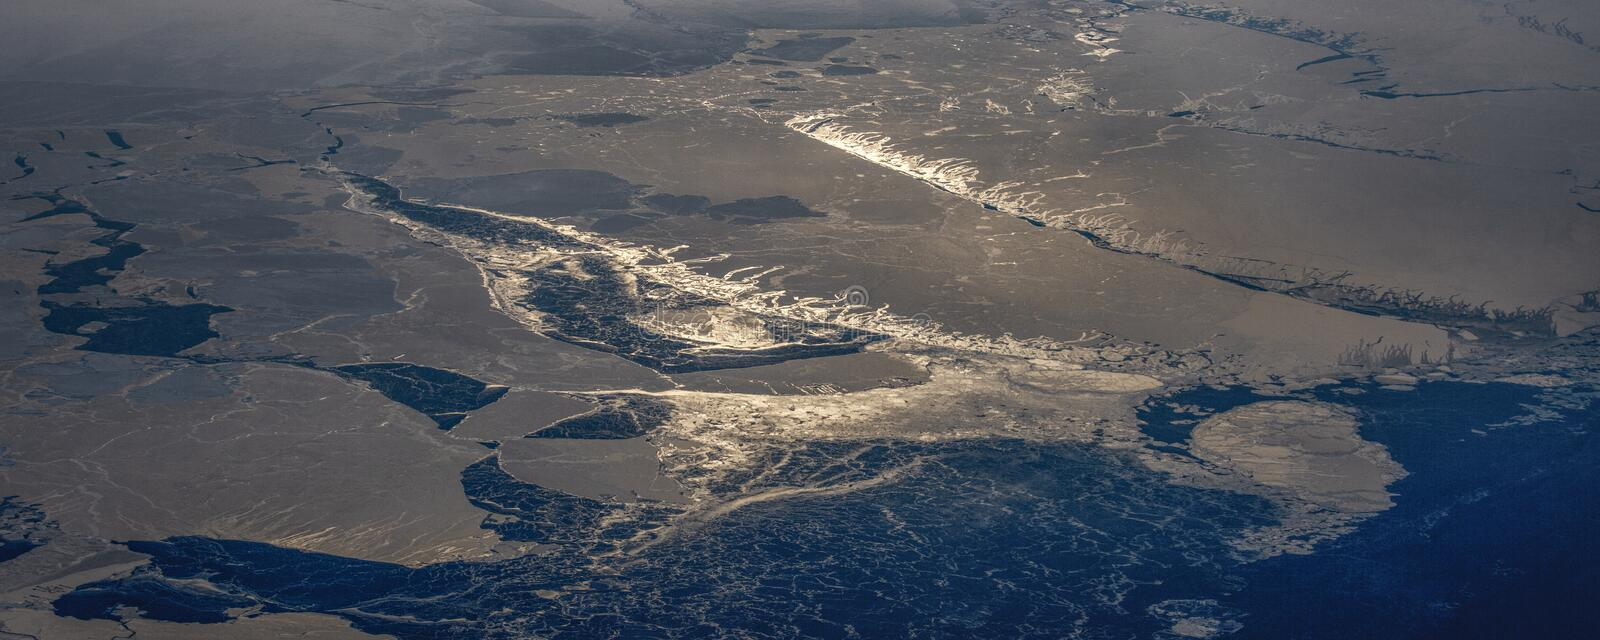 25Take an aerial view of the ice and sunrise over the bering strait.(1). The bering strait is located in the high latitudes, cold weather, many storms stock photography